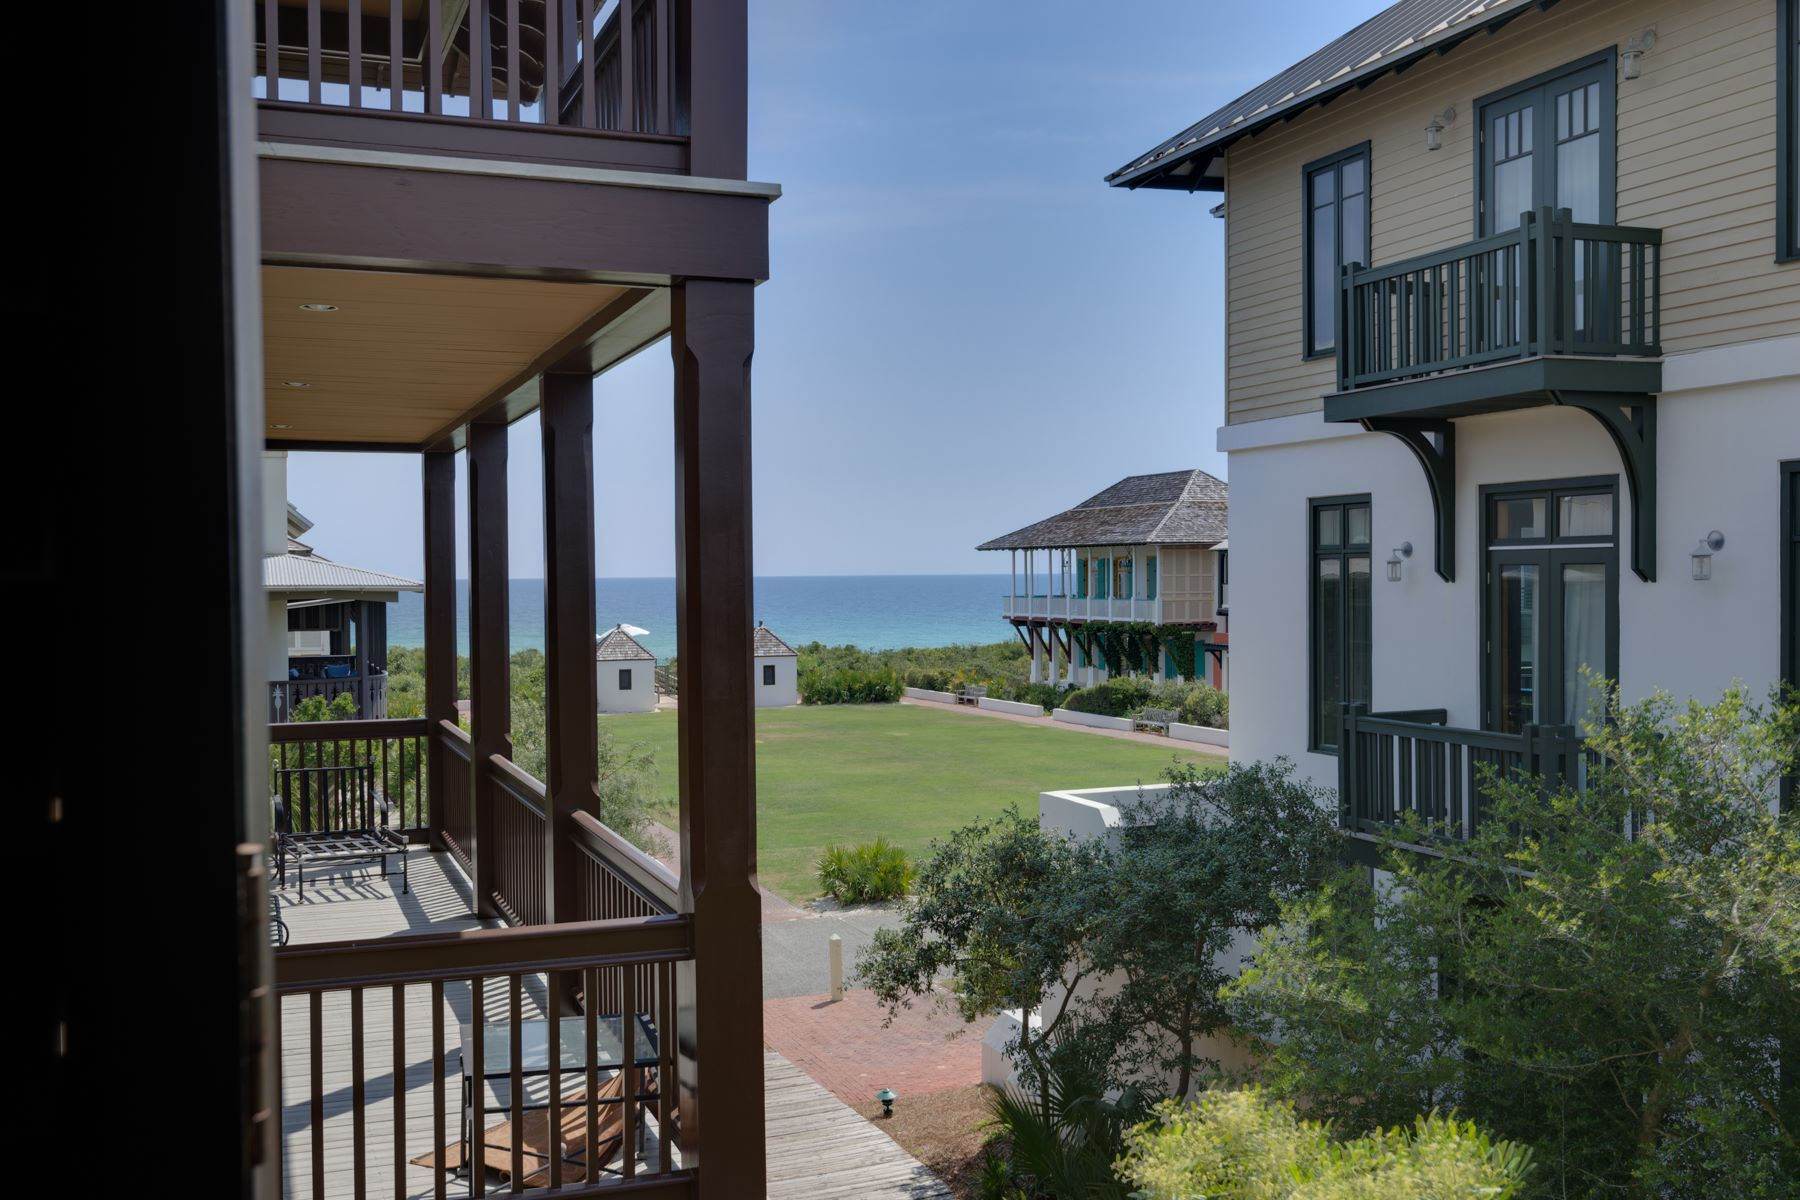 一戸建て のために 売買 アット CLASSIC WEST INDIES CHARM WITH OCEAN VIEWS 19 N Briland Lane Rosemary Beach, Rosemary Beach, フロリダ, 32461 アメリカ合衆国